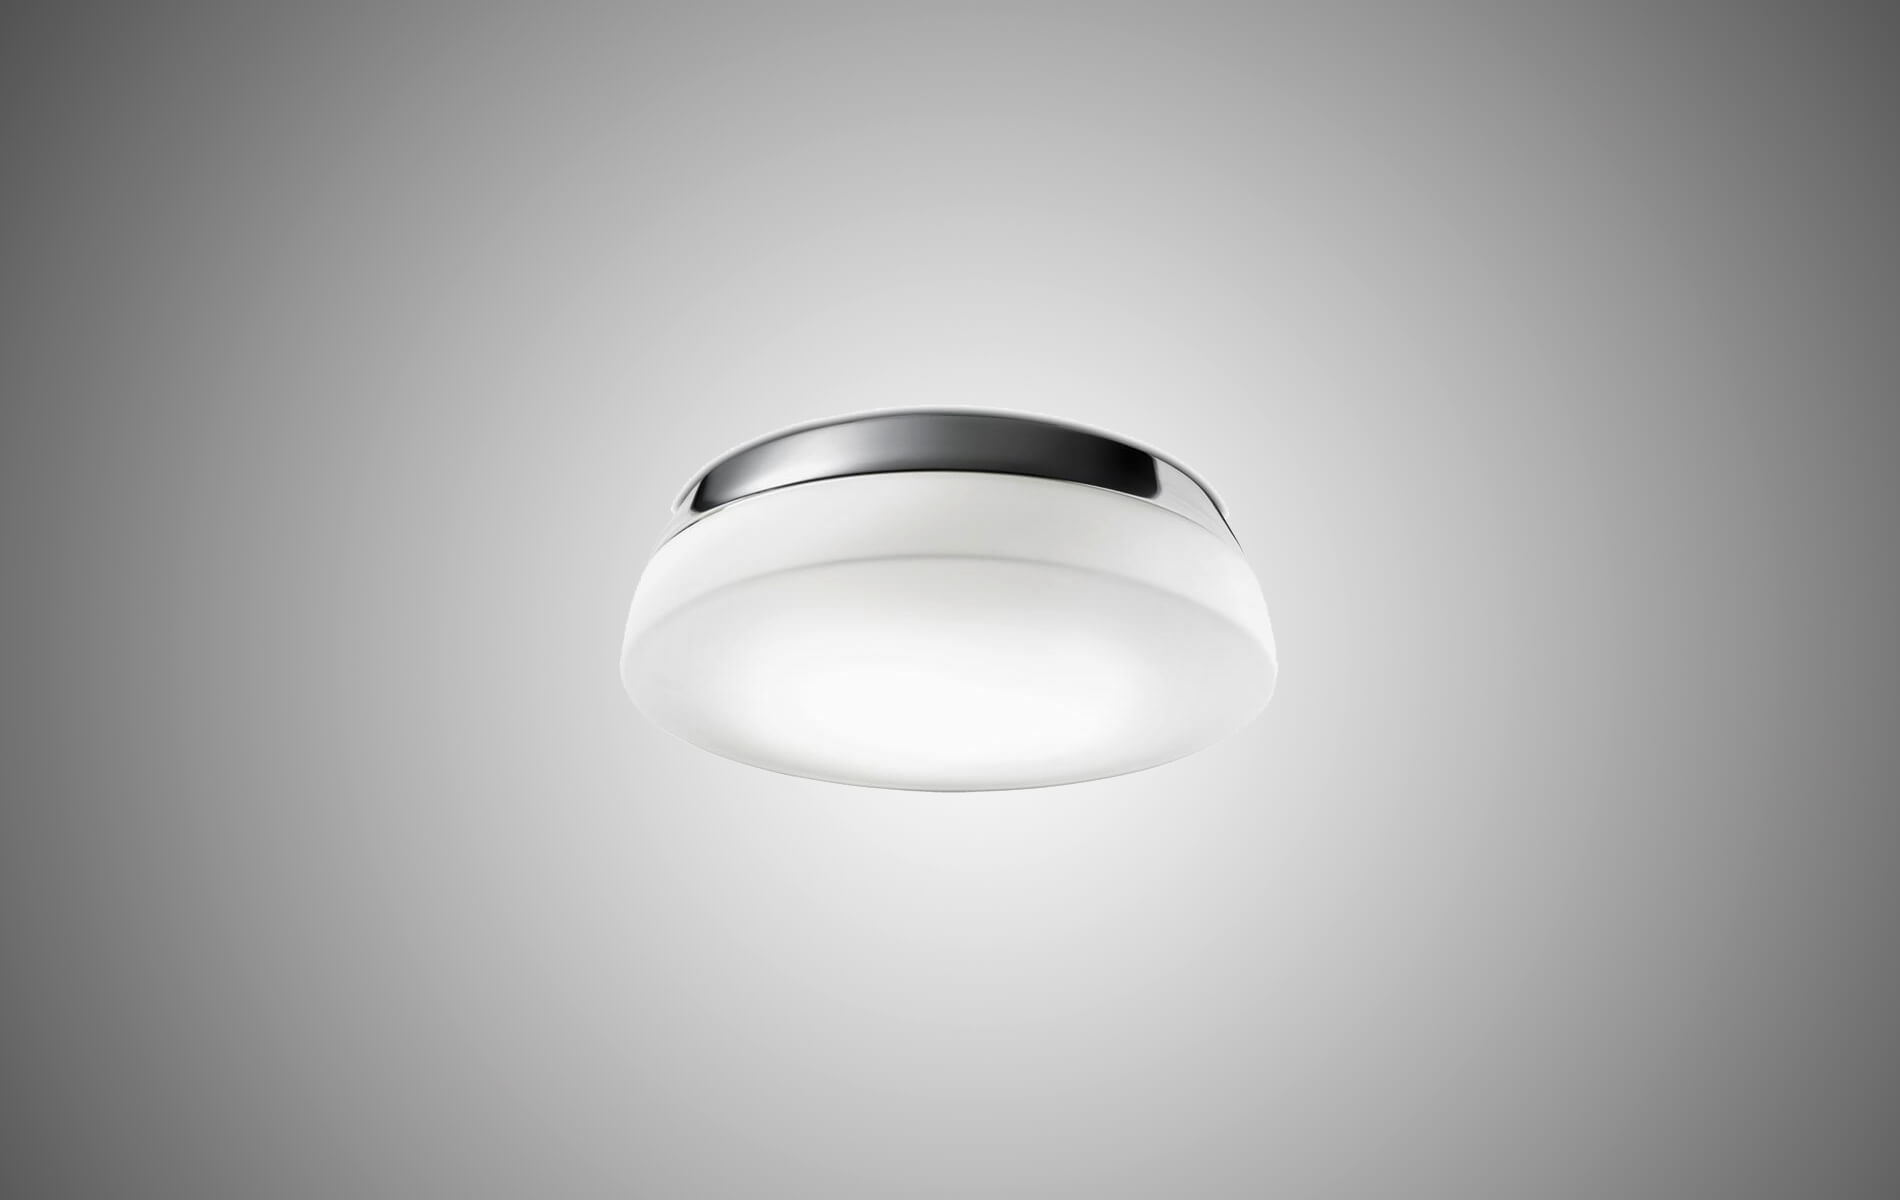 More information of Leds C4 DEC ceiling lamp